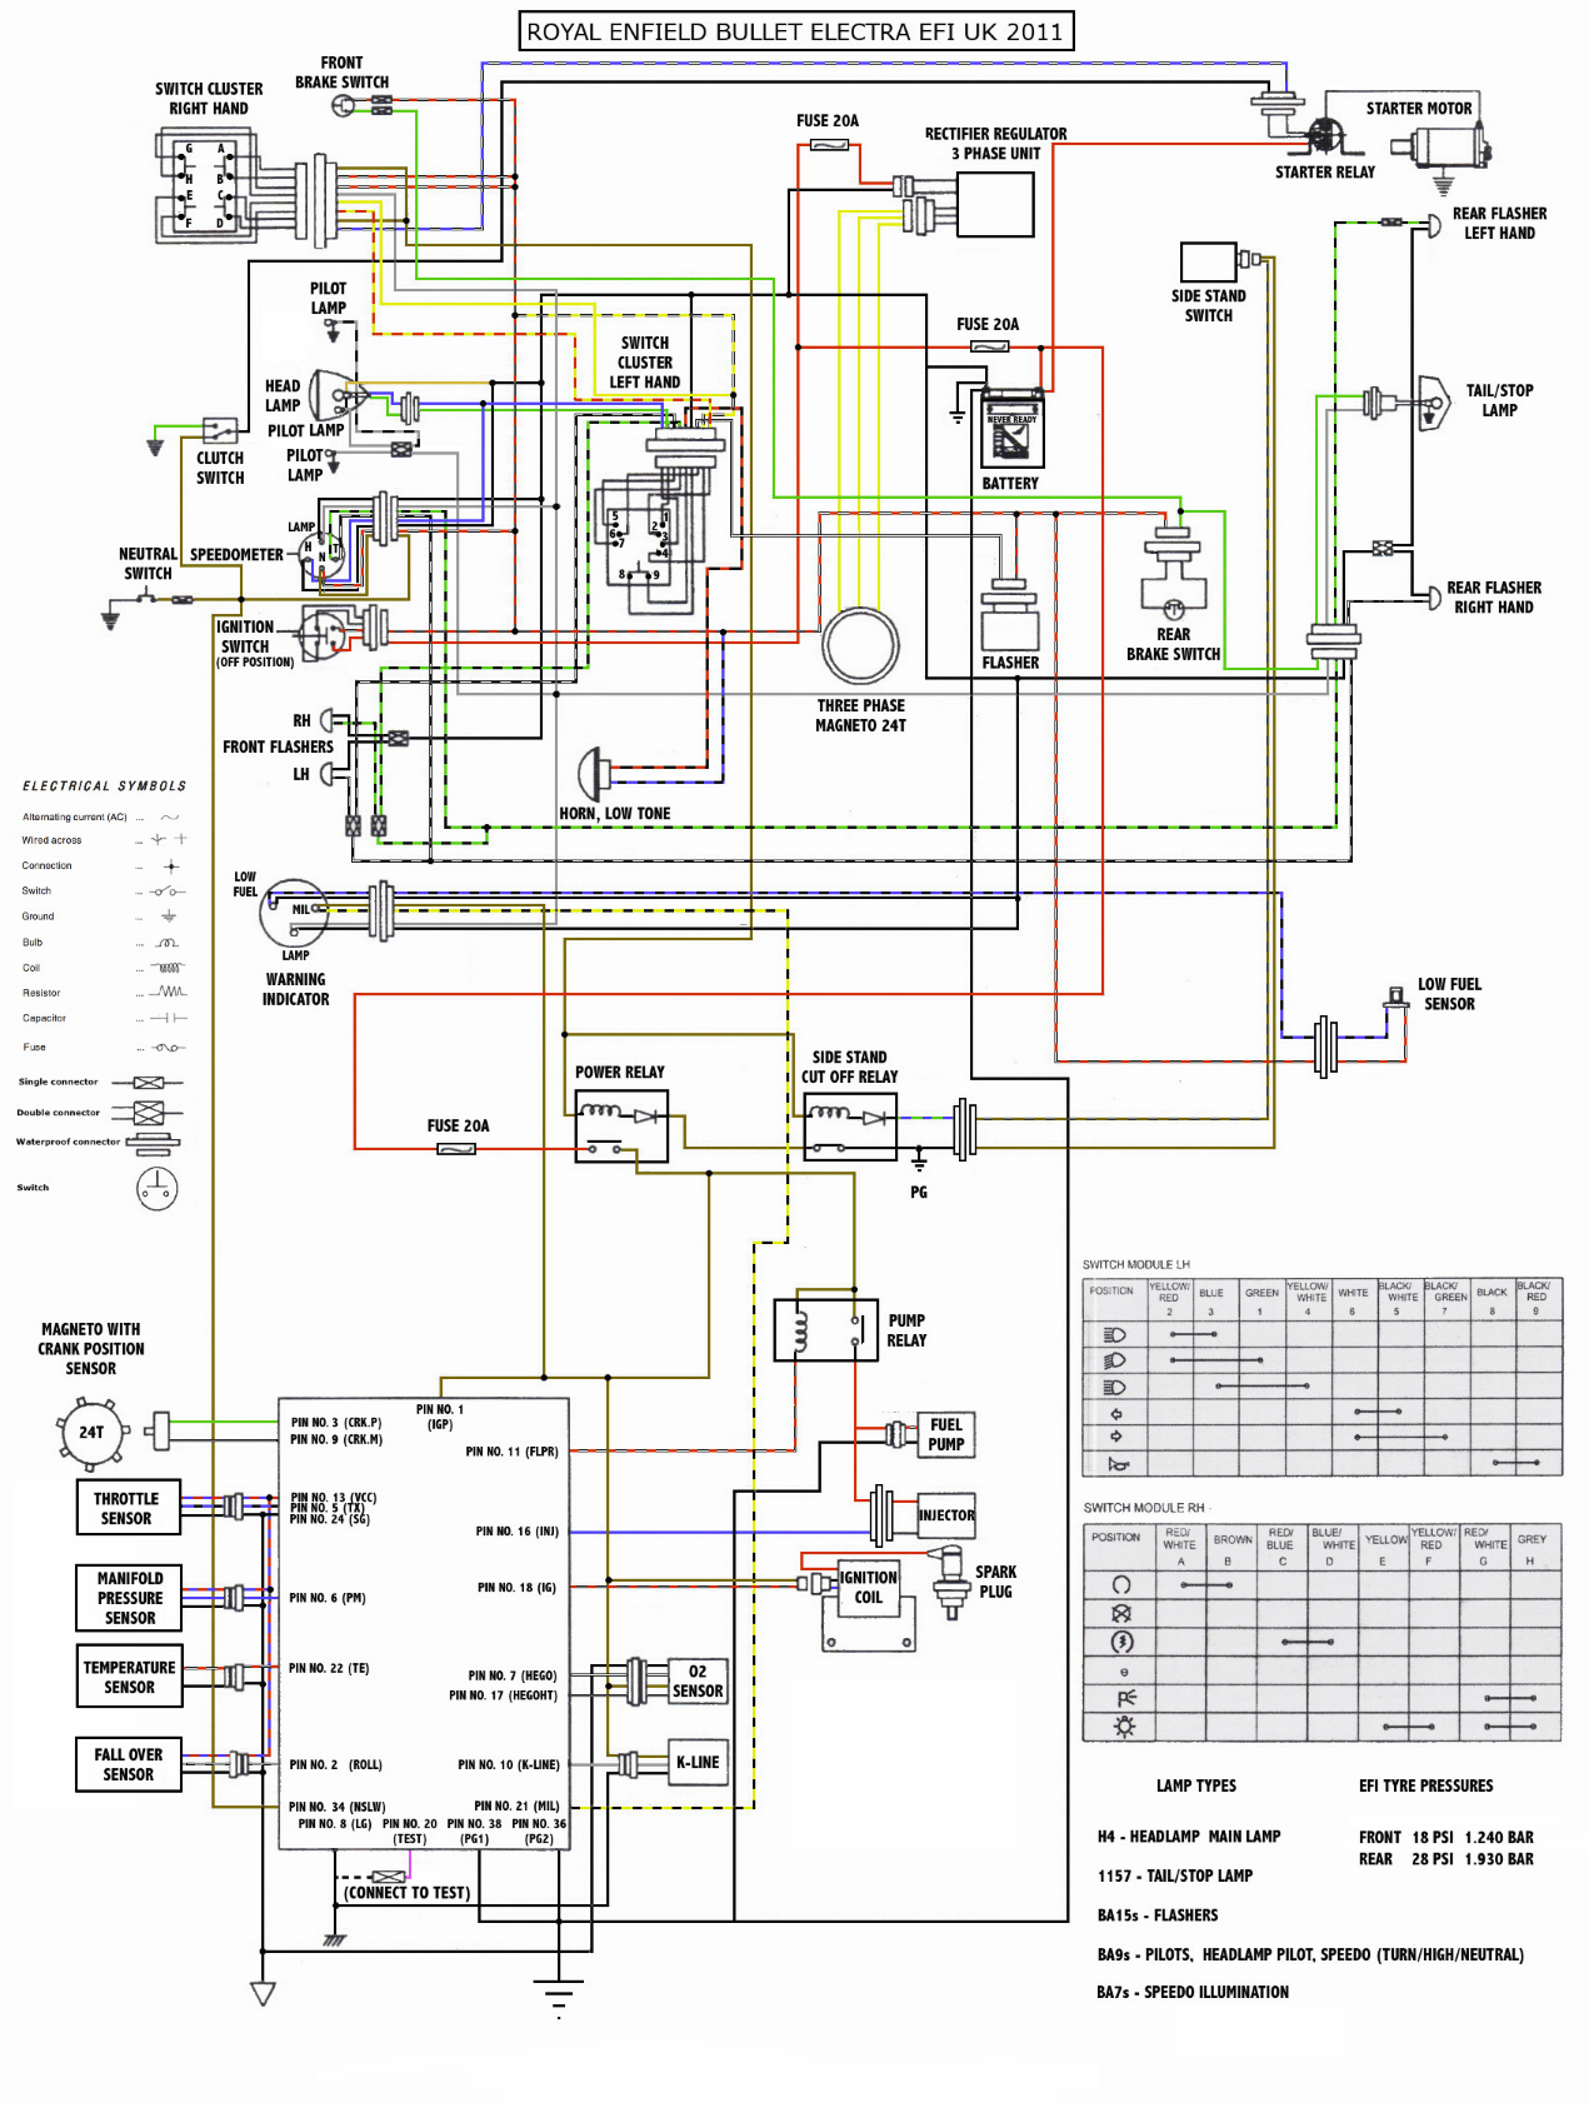 EFI workshop chart royal enfield resources royal enfield wiring diagrams at crackthecode.co